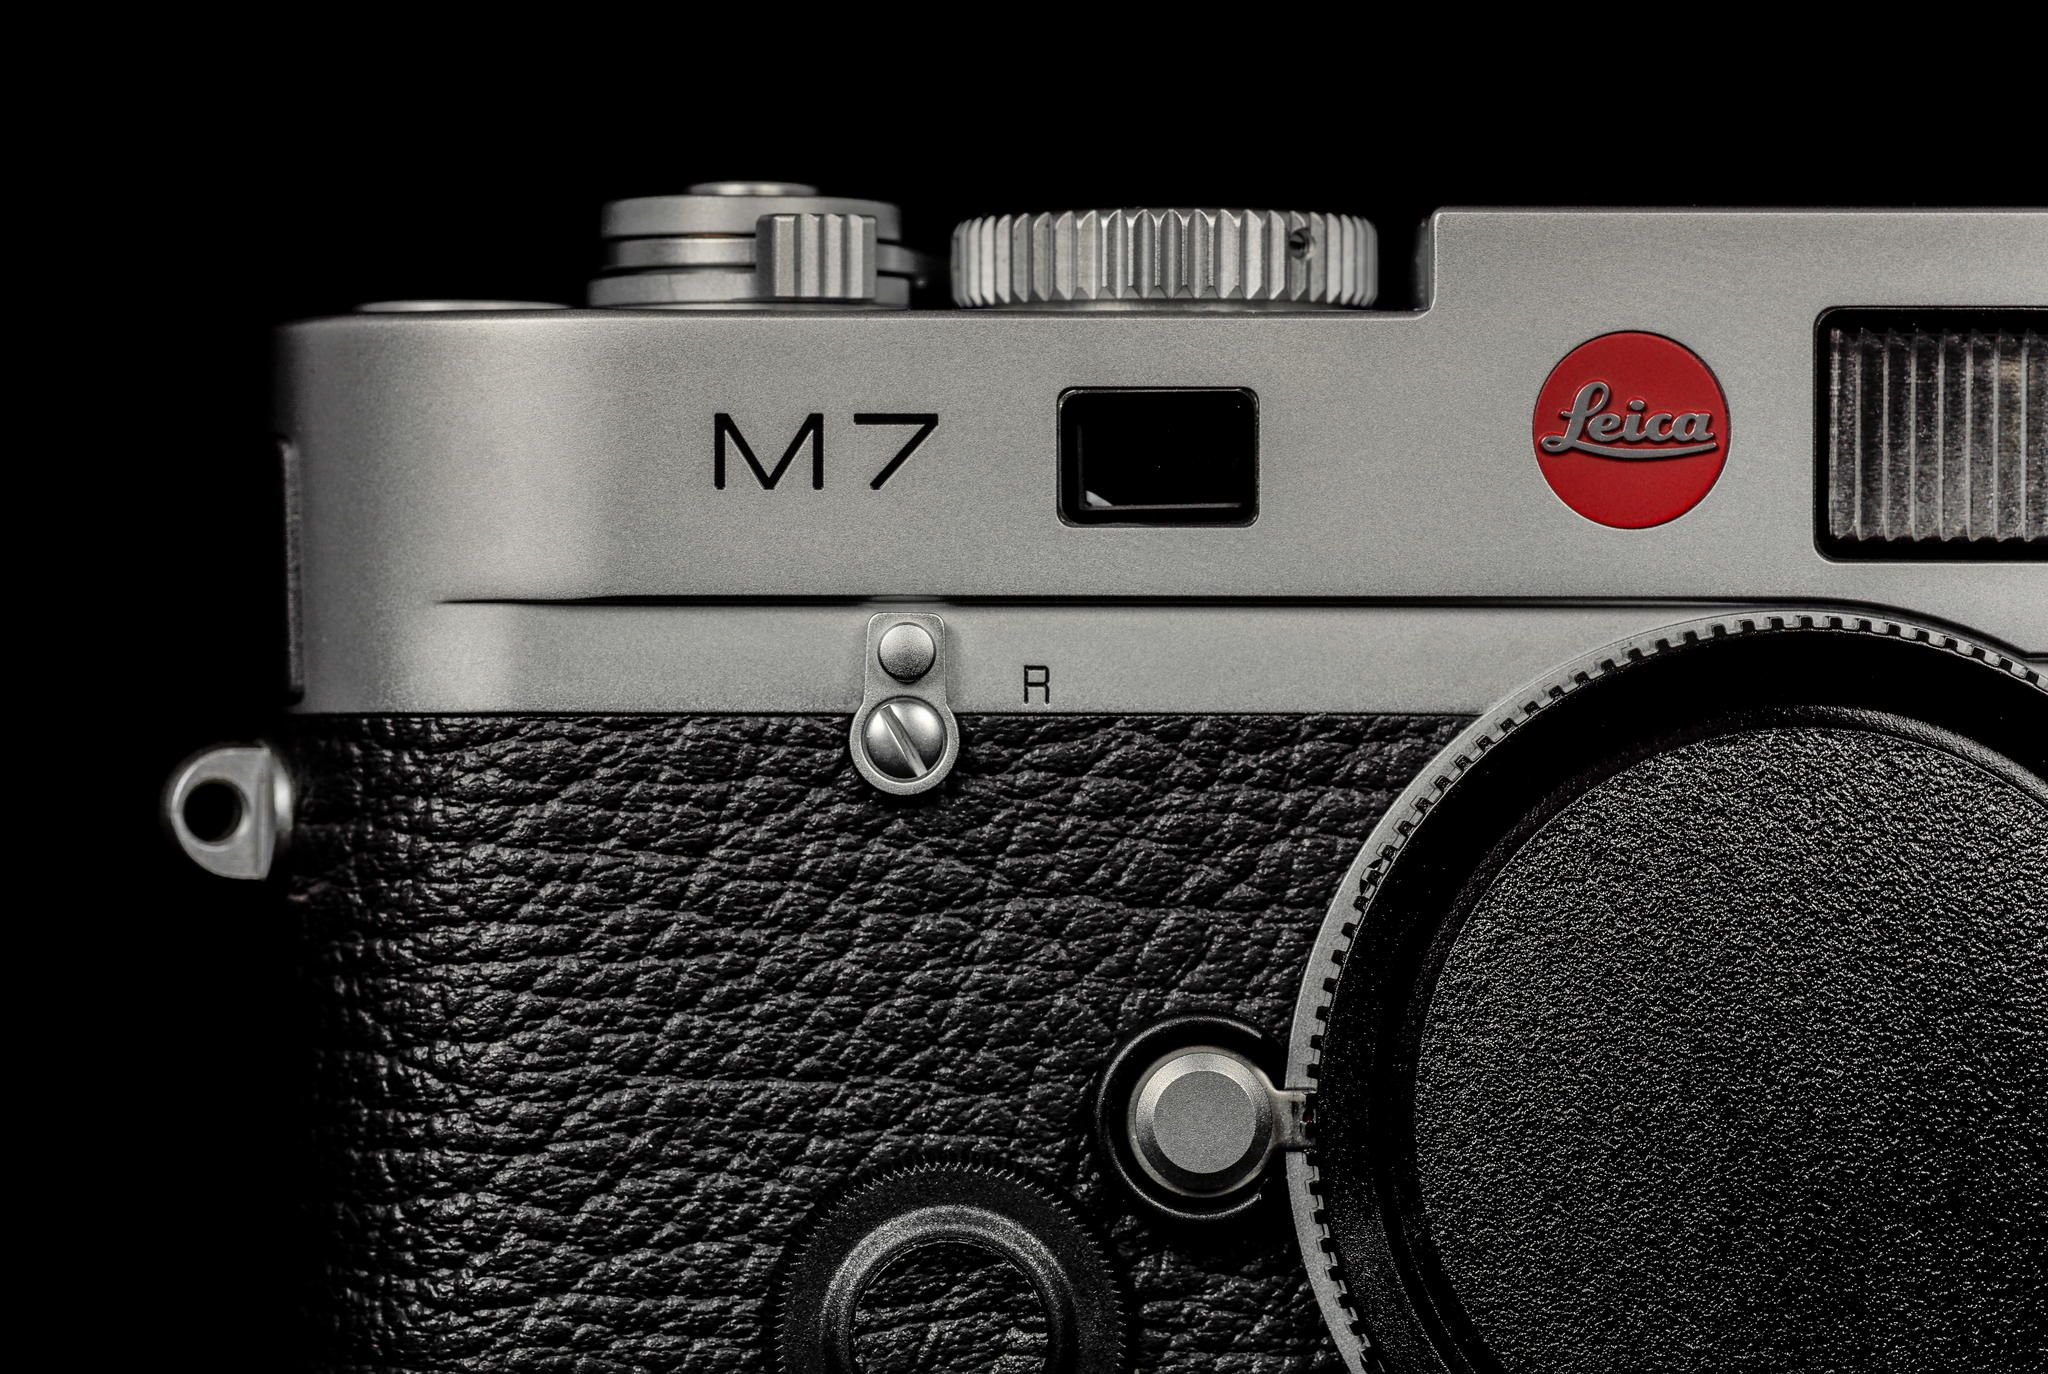 500px / The Great Leica M7 by Arthur Schmidt